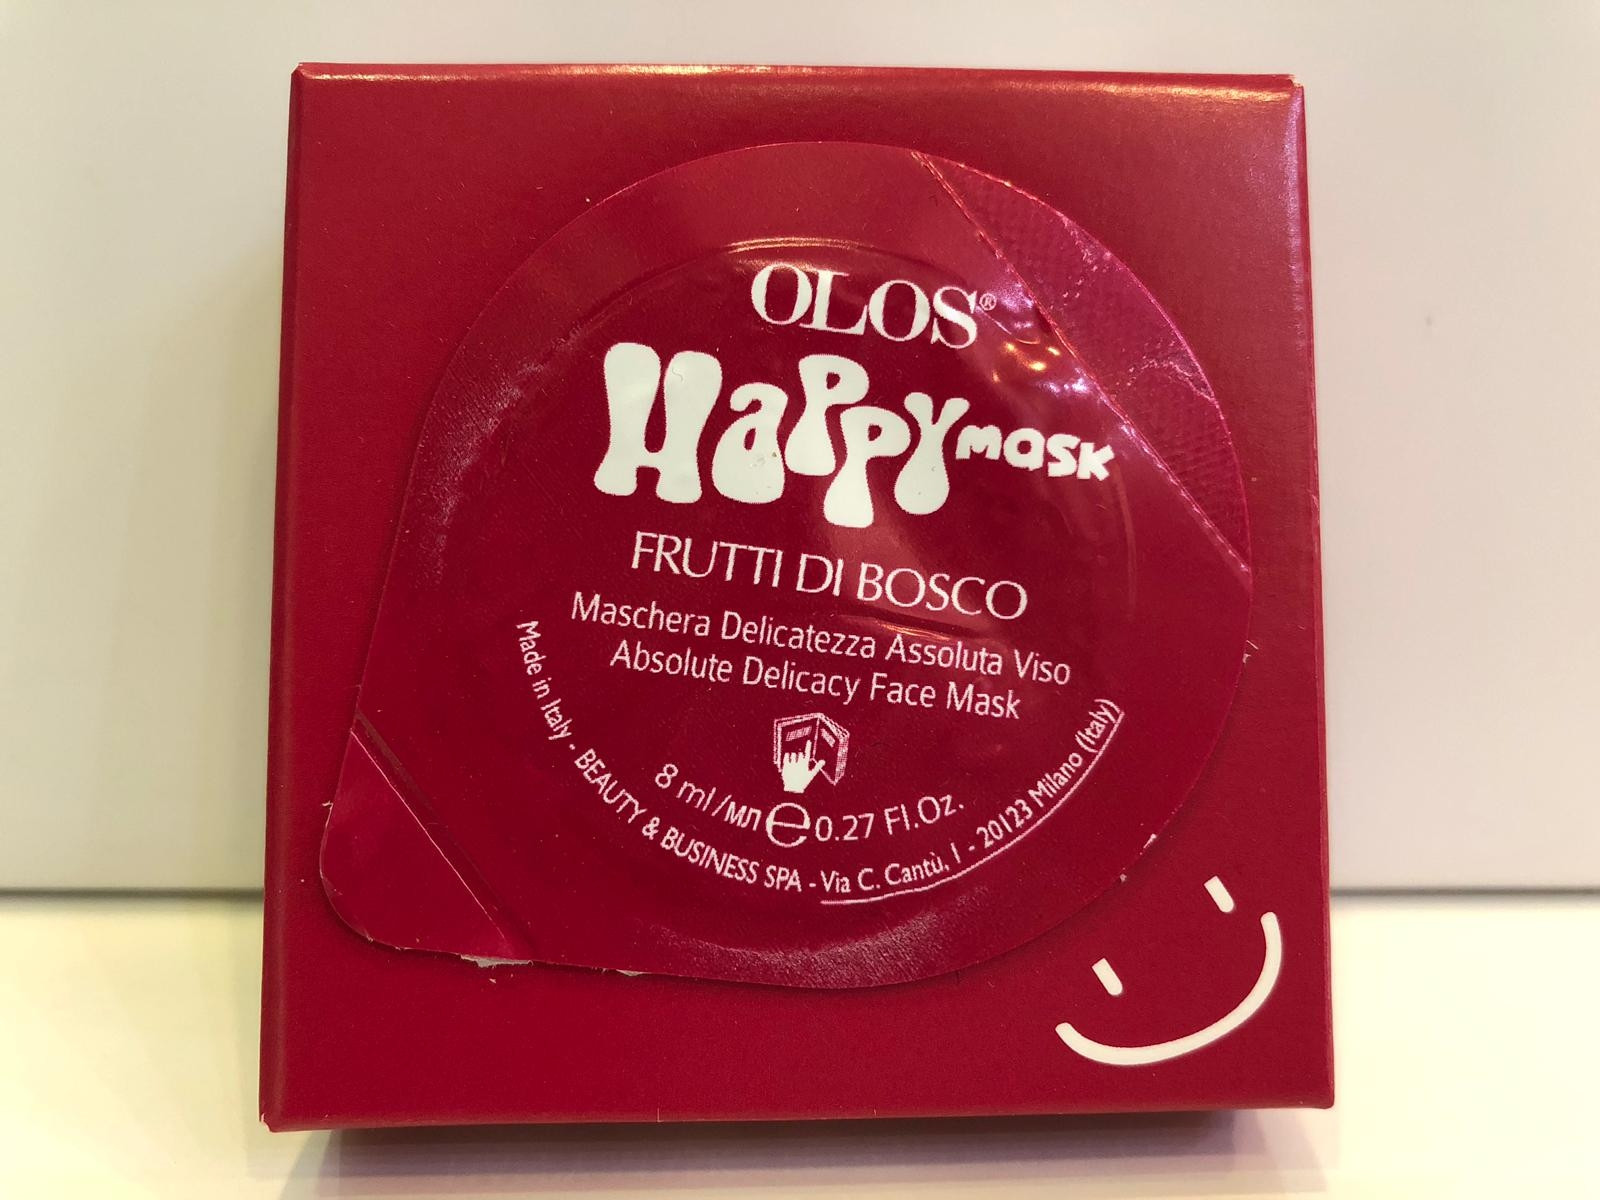 Happy Mask Frutti di Bosco